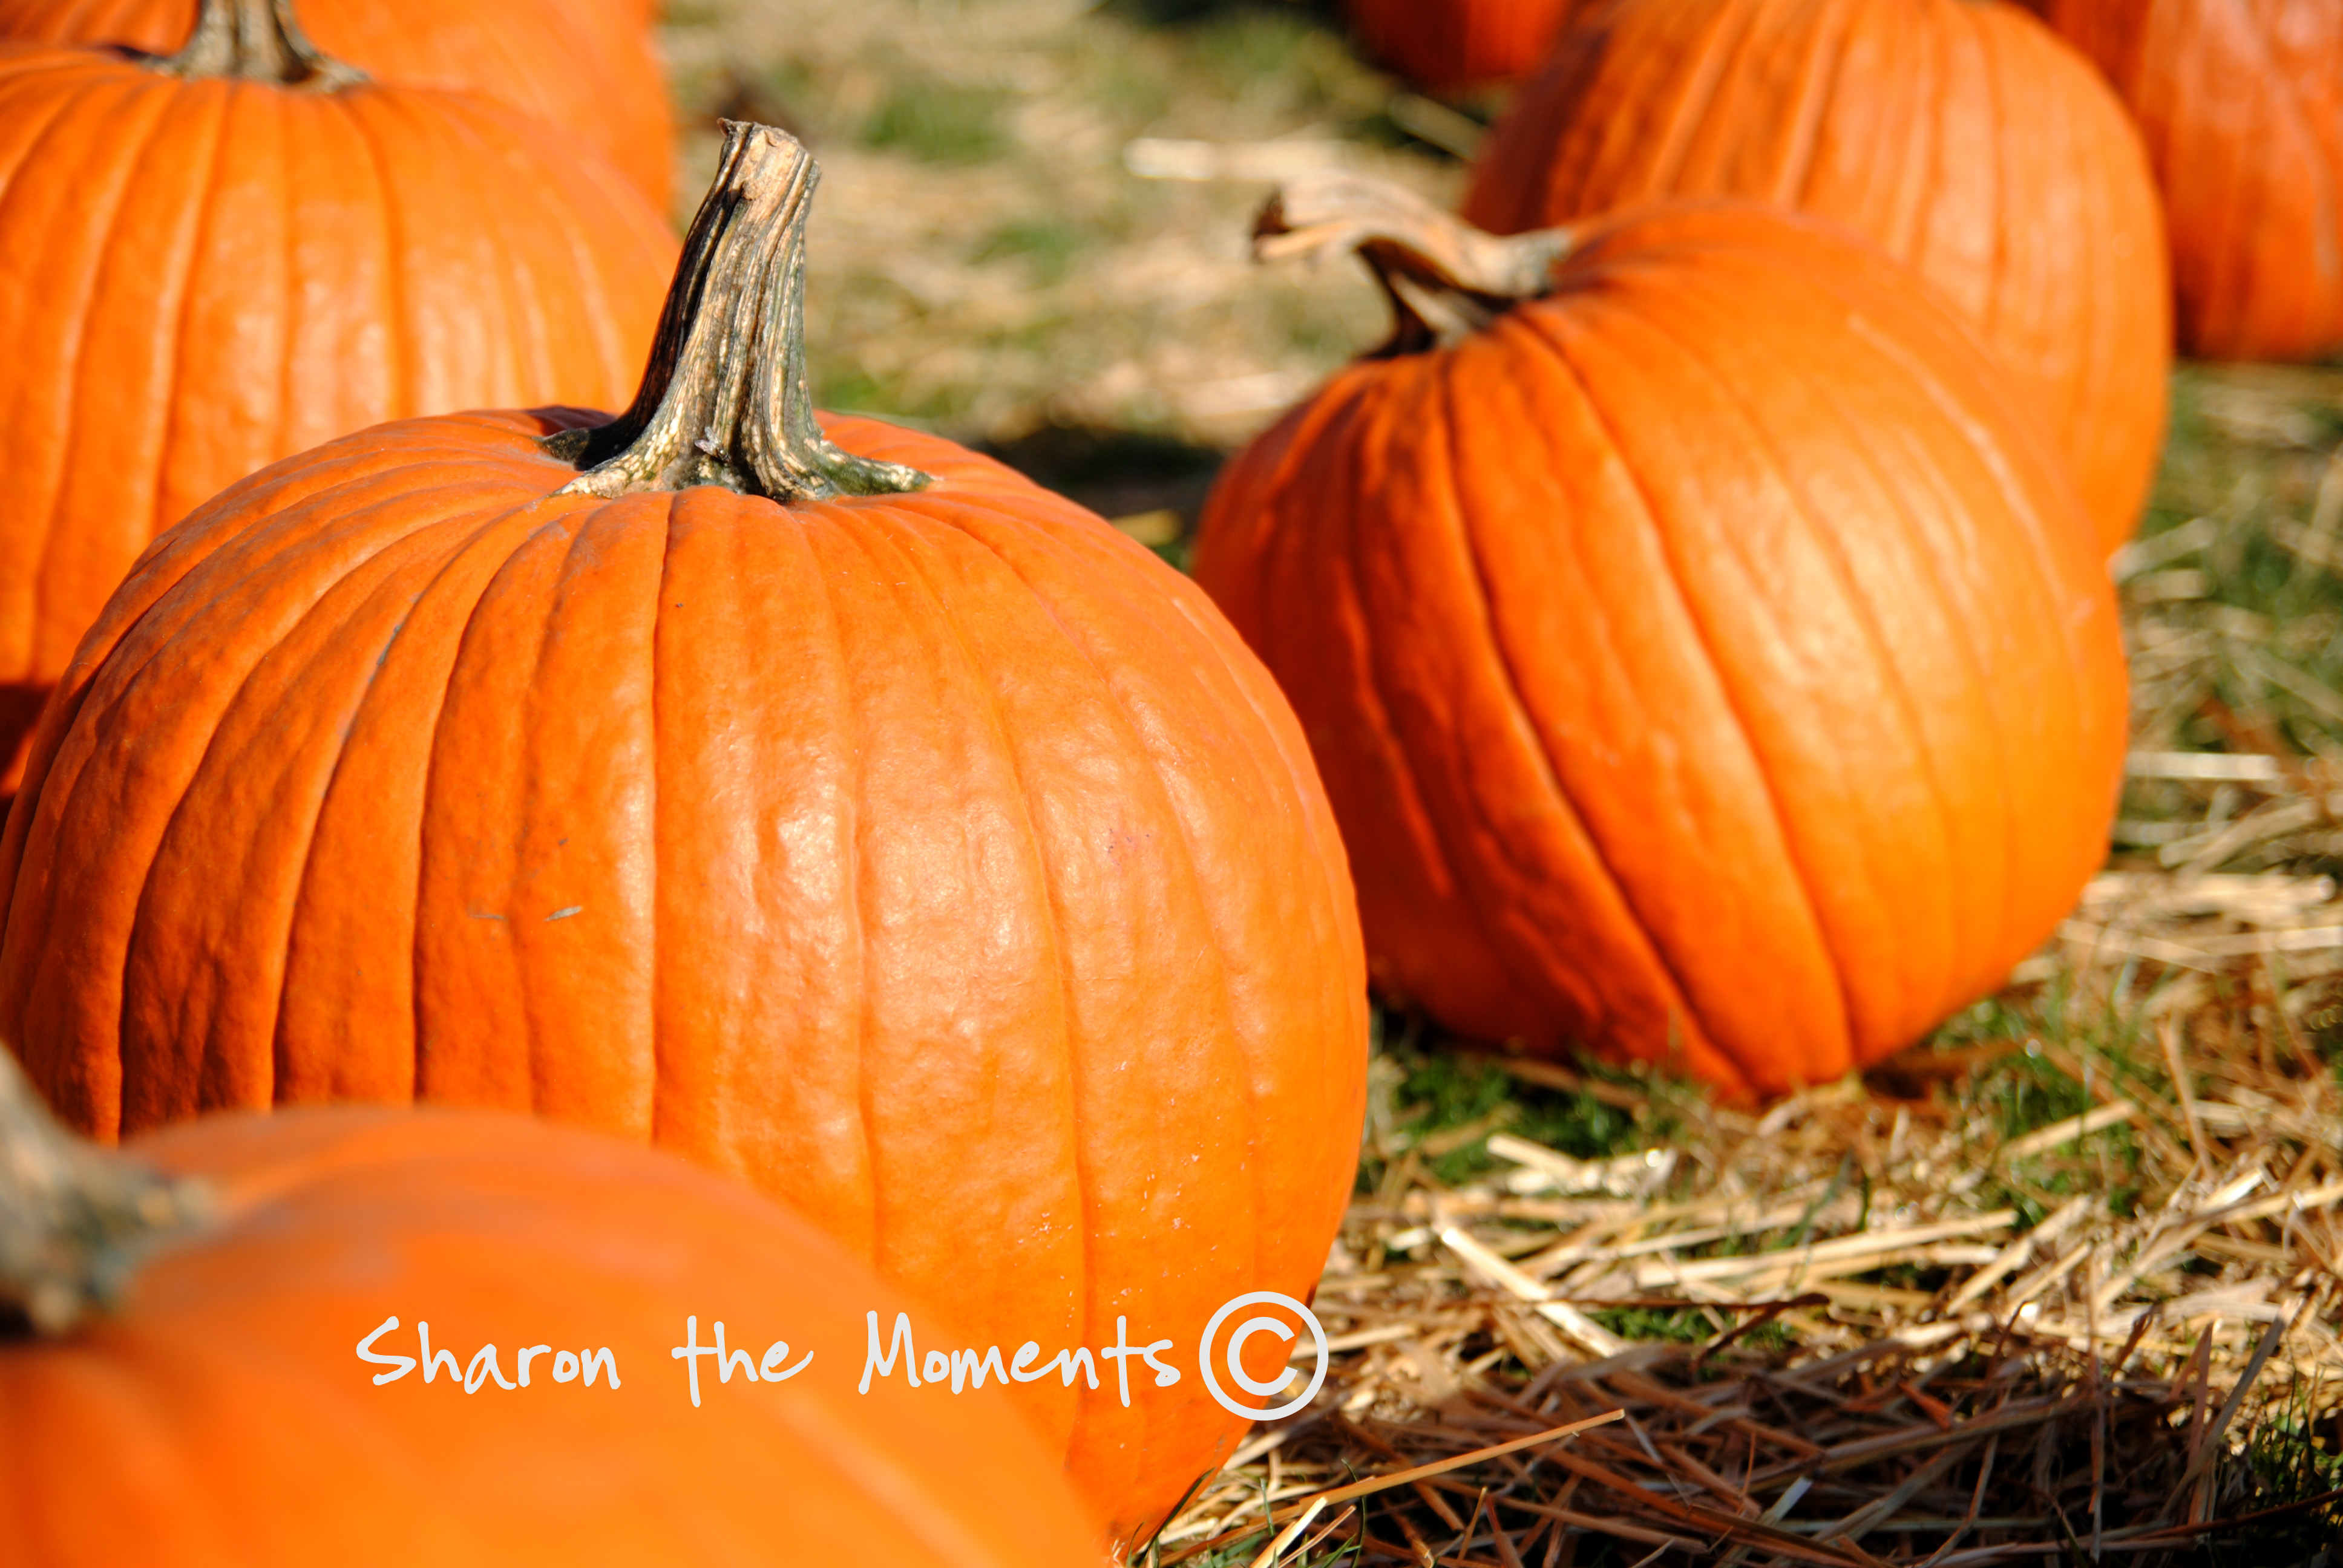 Pumpkins in the pumpkin patch|Sharon the Moments blog